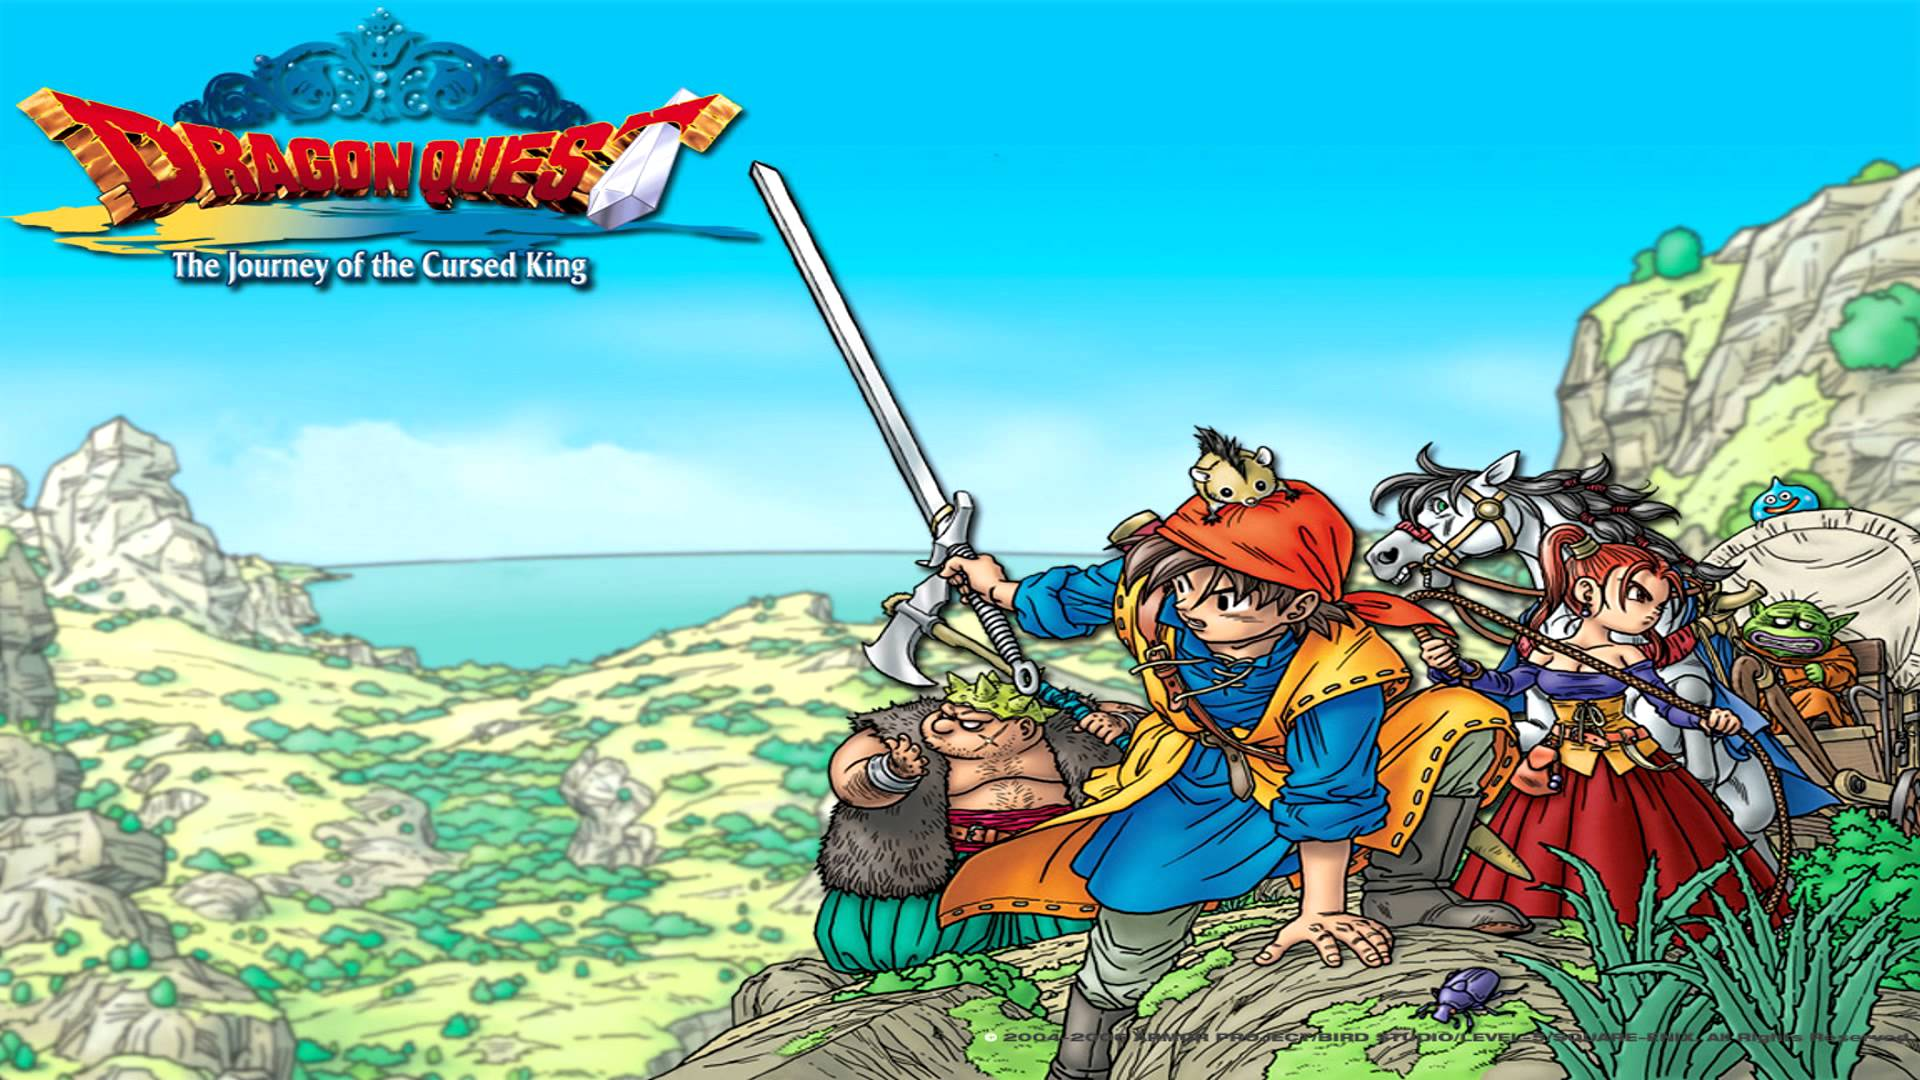 Dragon Quest Viii Journey Of The Cursed King Nintendo 3ds Review